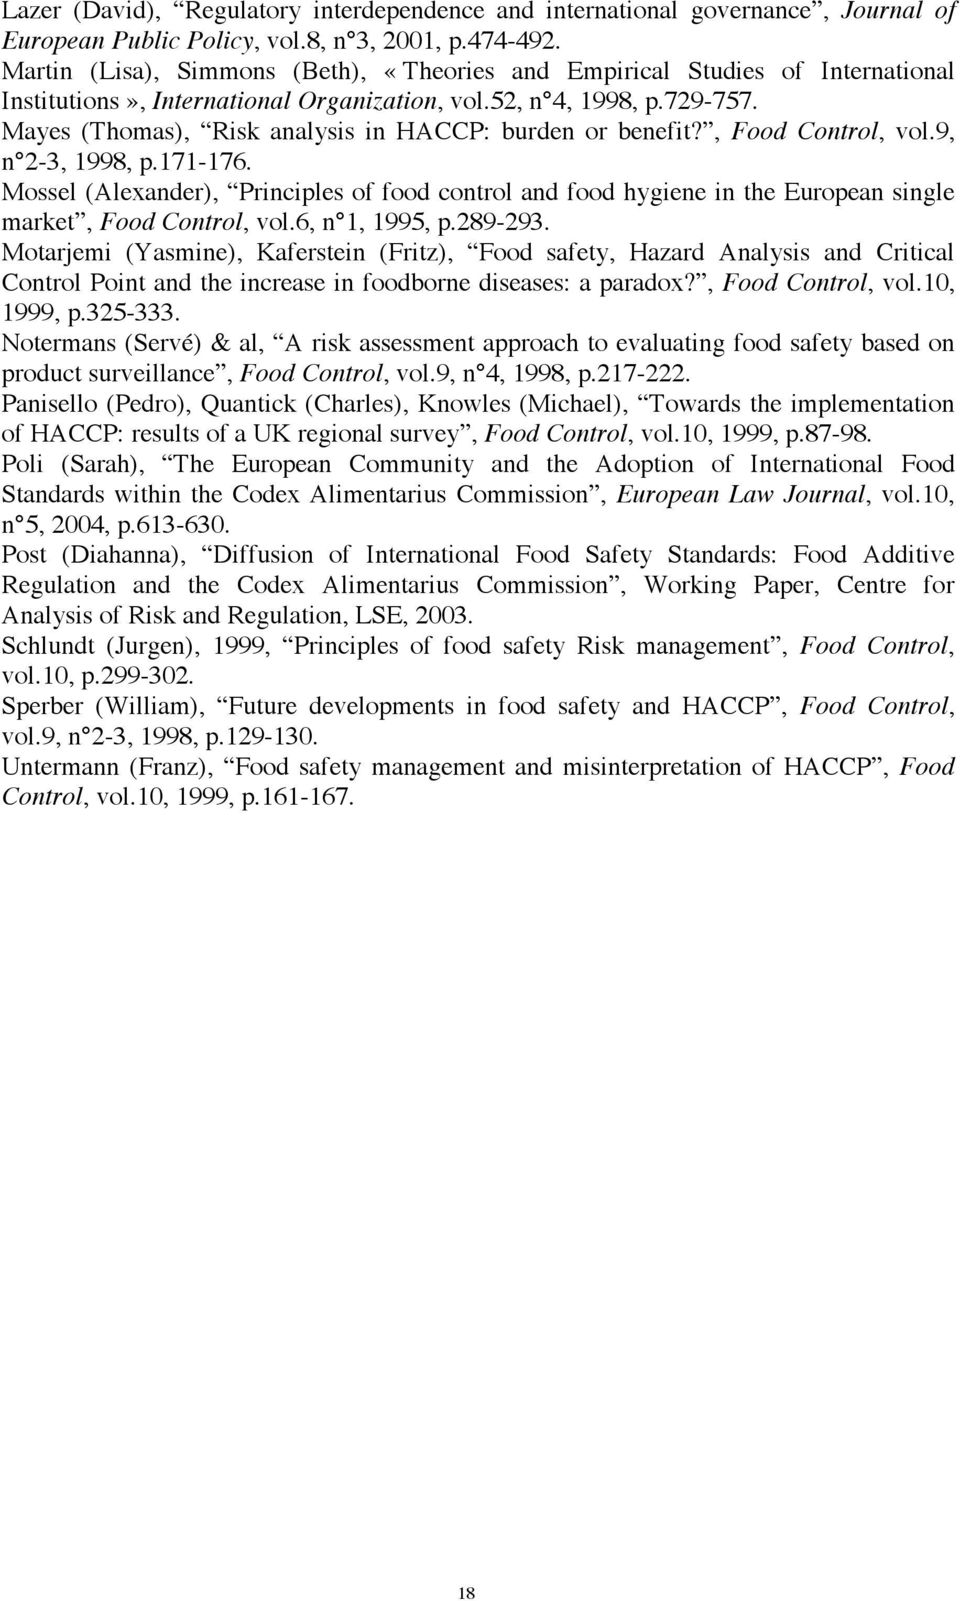 Mayes (Thomas), Risk analysis in HACCP: burden or benefit?, Food Control, vol.9, n 2-3, 1998, p.171-176.